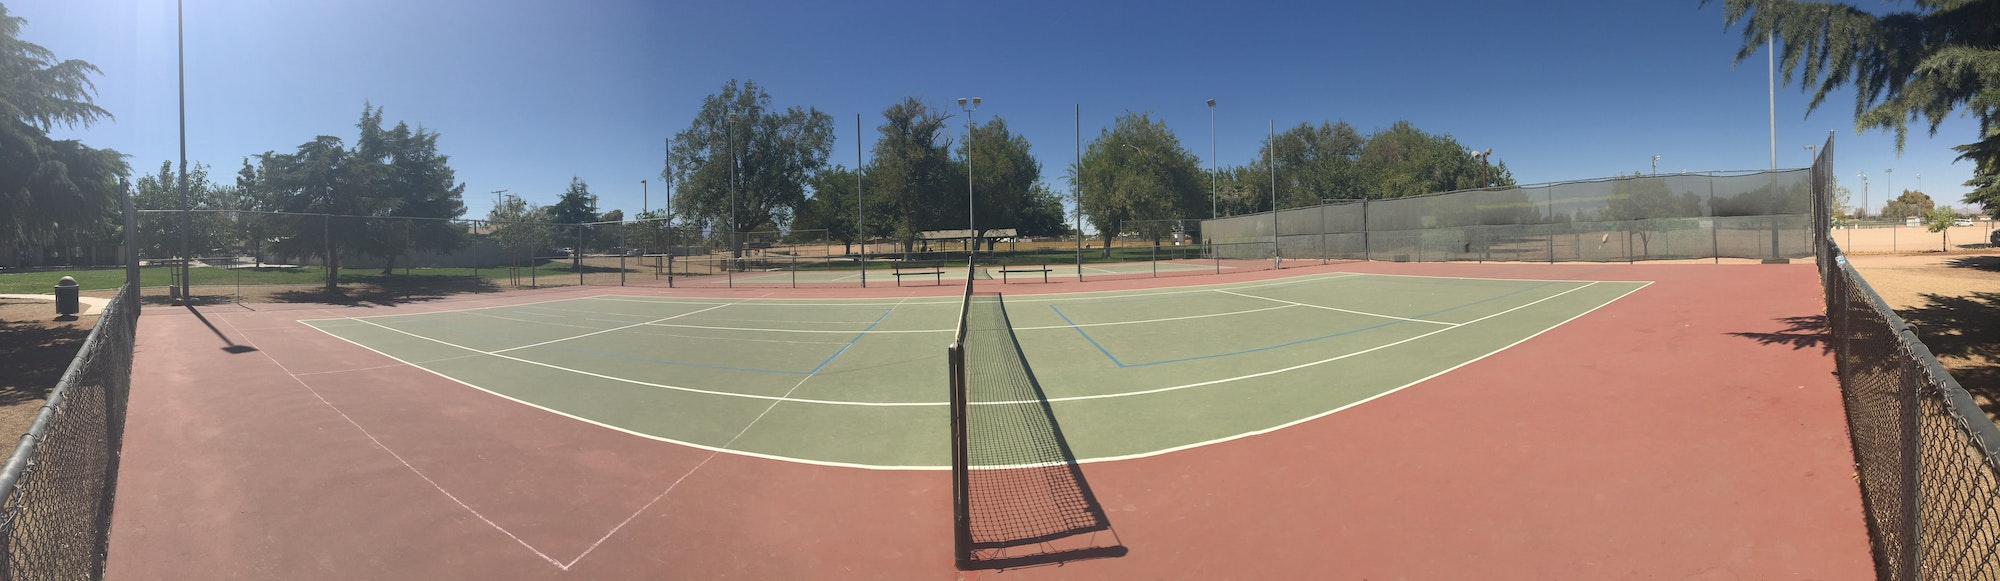 Panoramic view of tennis courts at Lime Street Park